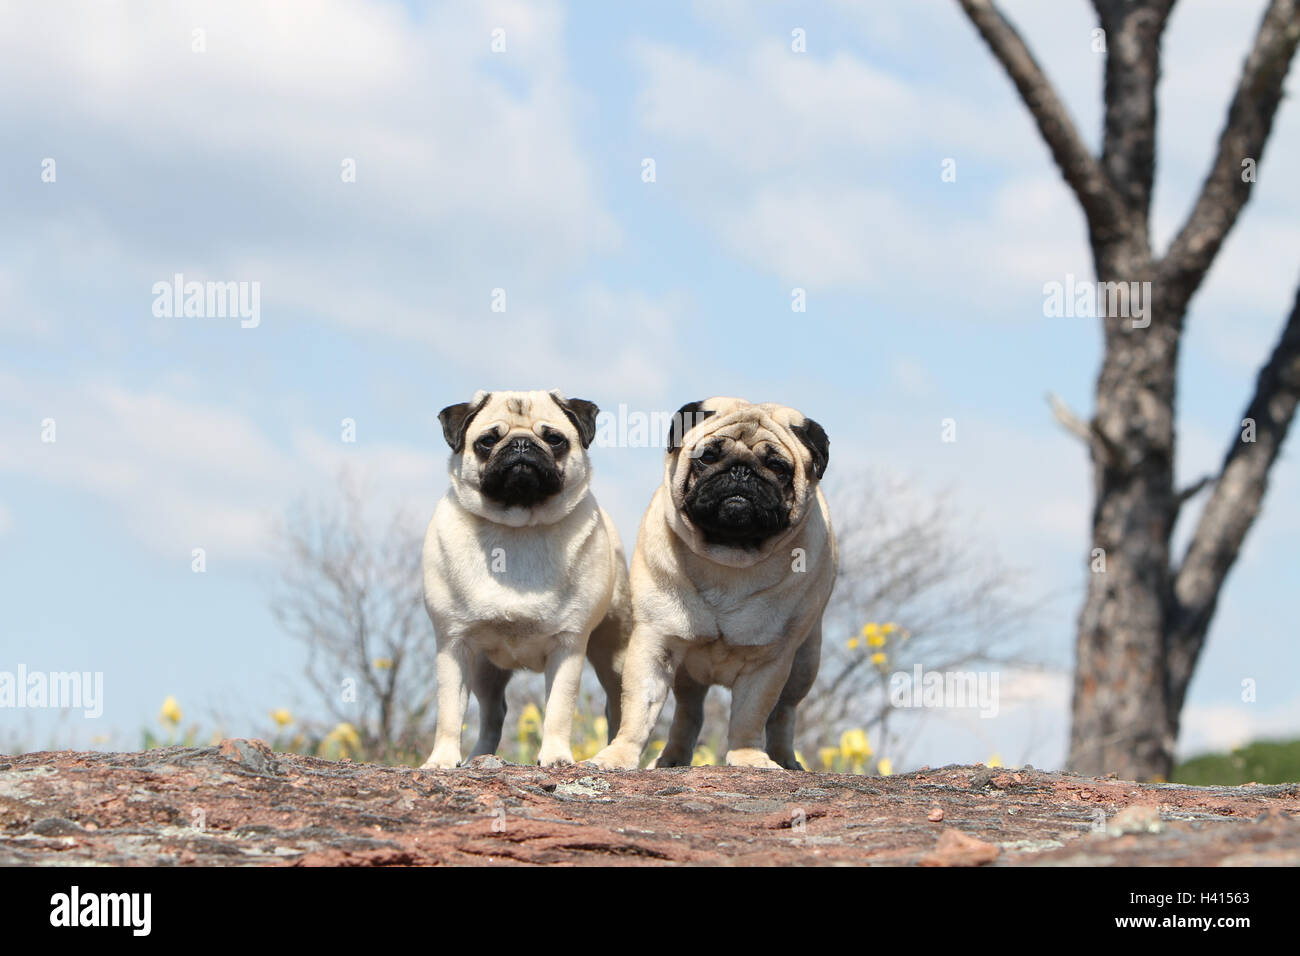 Dog Pug / Carlin / Mops adult, adults, adult mature, mid adult fawn grey gray 2, two, several, together, duo, pair, Stock Photo